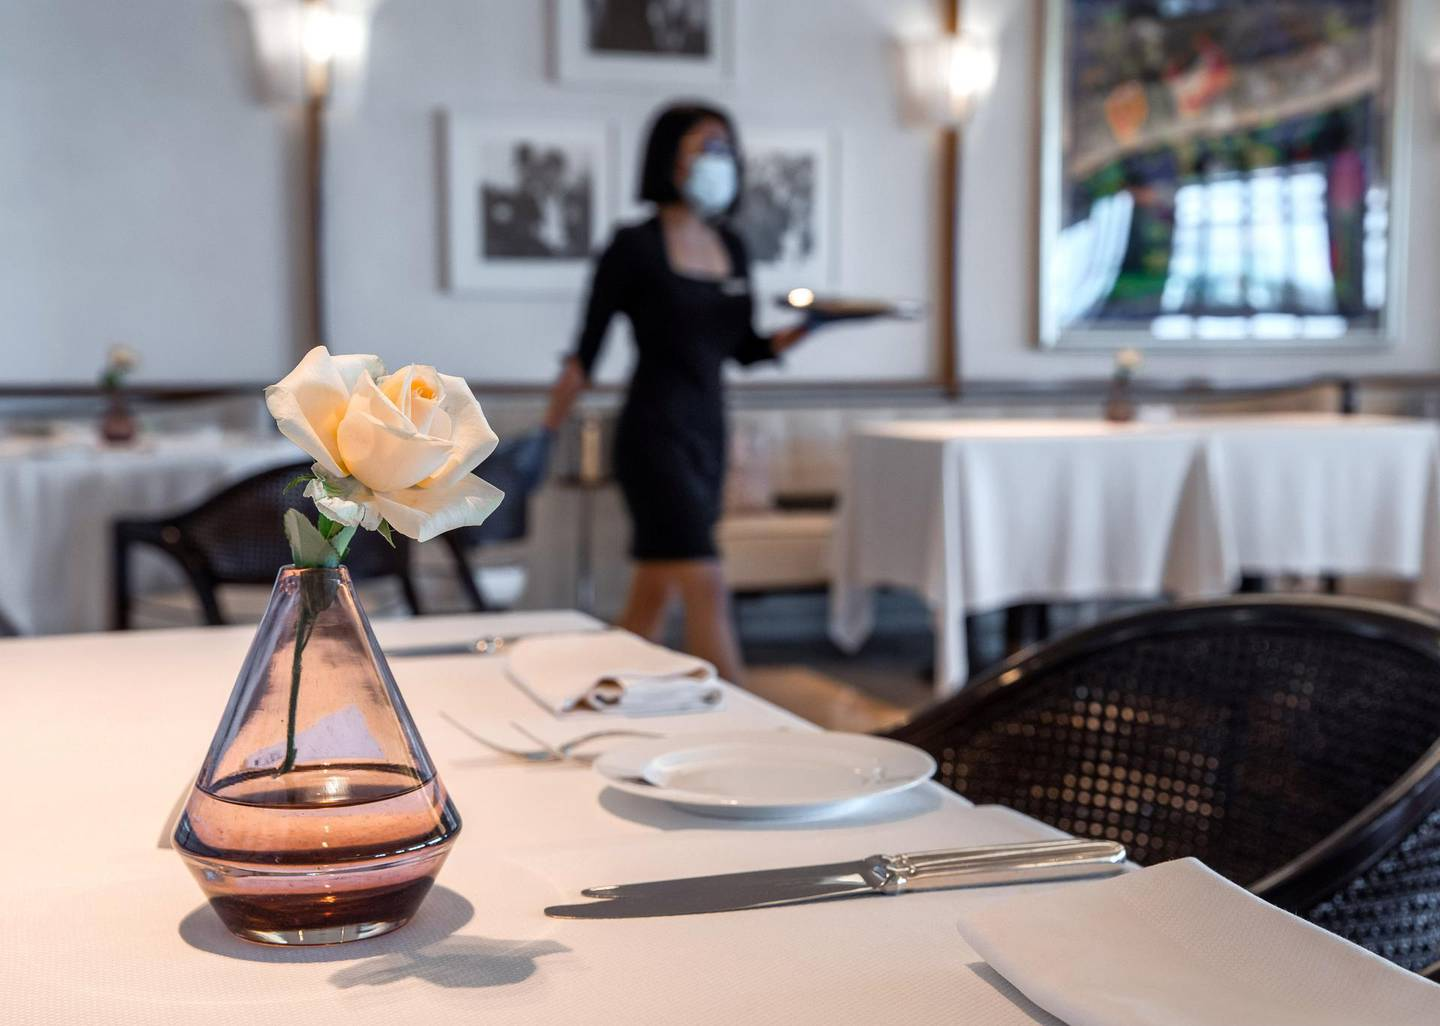 Abu Dhabi, United Arab Emirates, June 15, 2020.    Distanced tables at the Cafe Milano at the Four Seasons Hotel, Abu Dhabi.Victor Besa  / The NationalSection:  IfReporter:  Janice Rodrigues